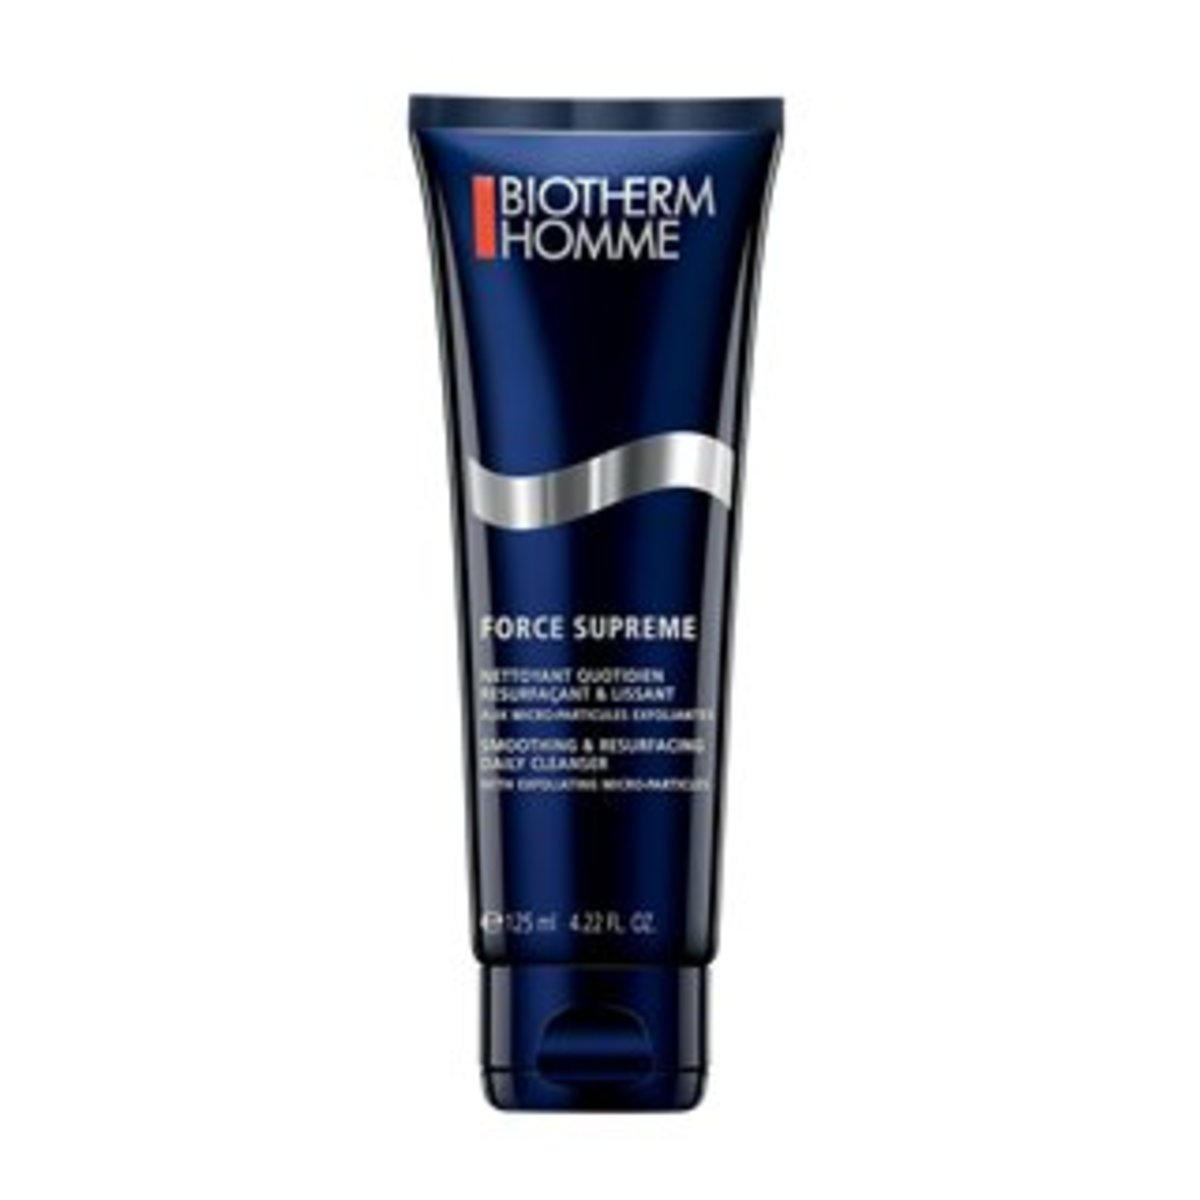 Force Supreme Anti-Aging Cleanser 125g (Parallel Import)